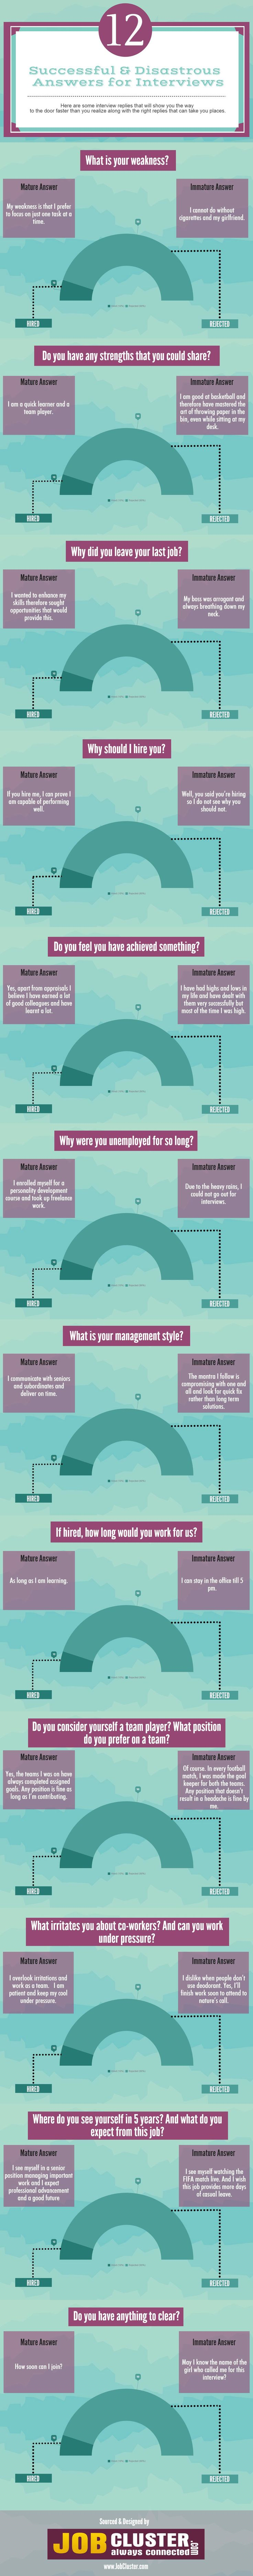 Successful and Disastrous Answers for Behavioral Interview Questions- Infographic #Interview #JObInterviiew